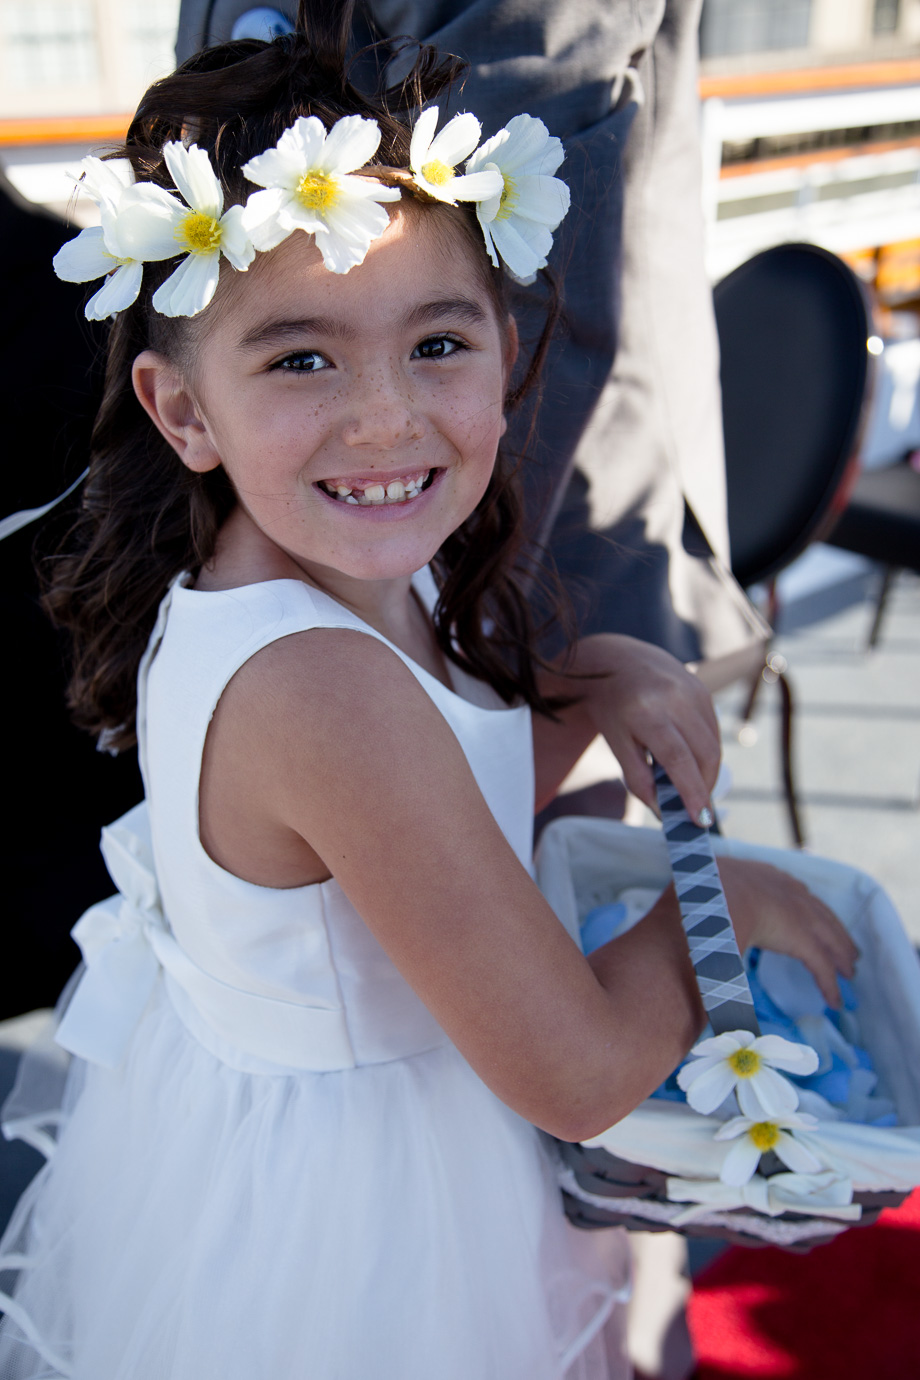 Pretty flower girl smiling with cute flower headband